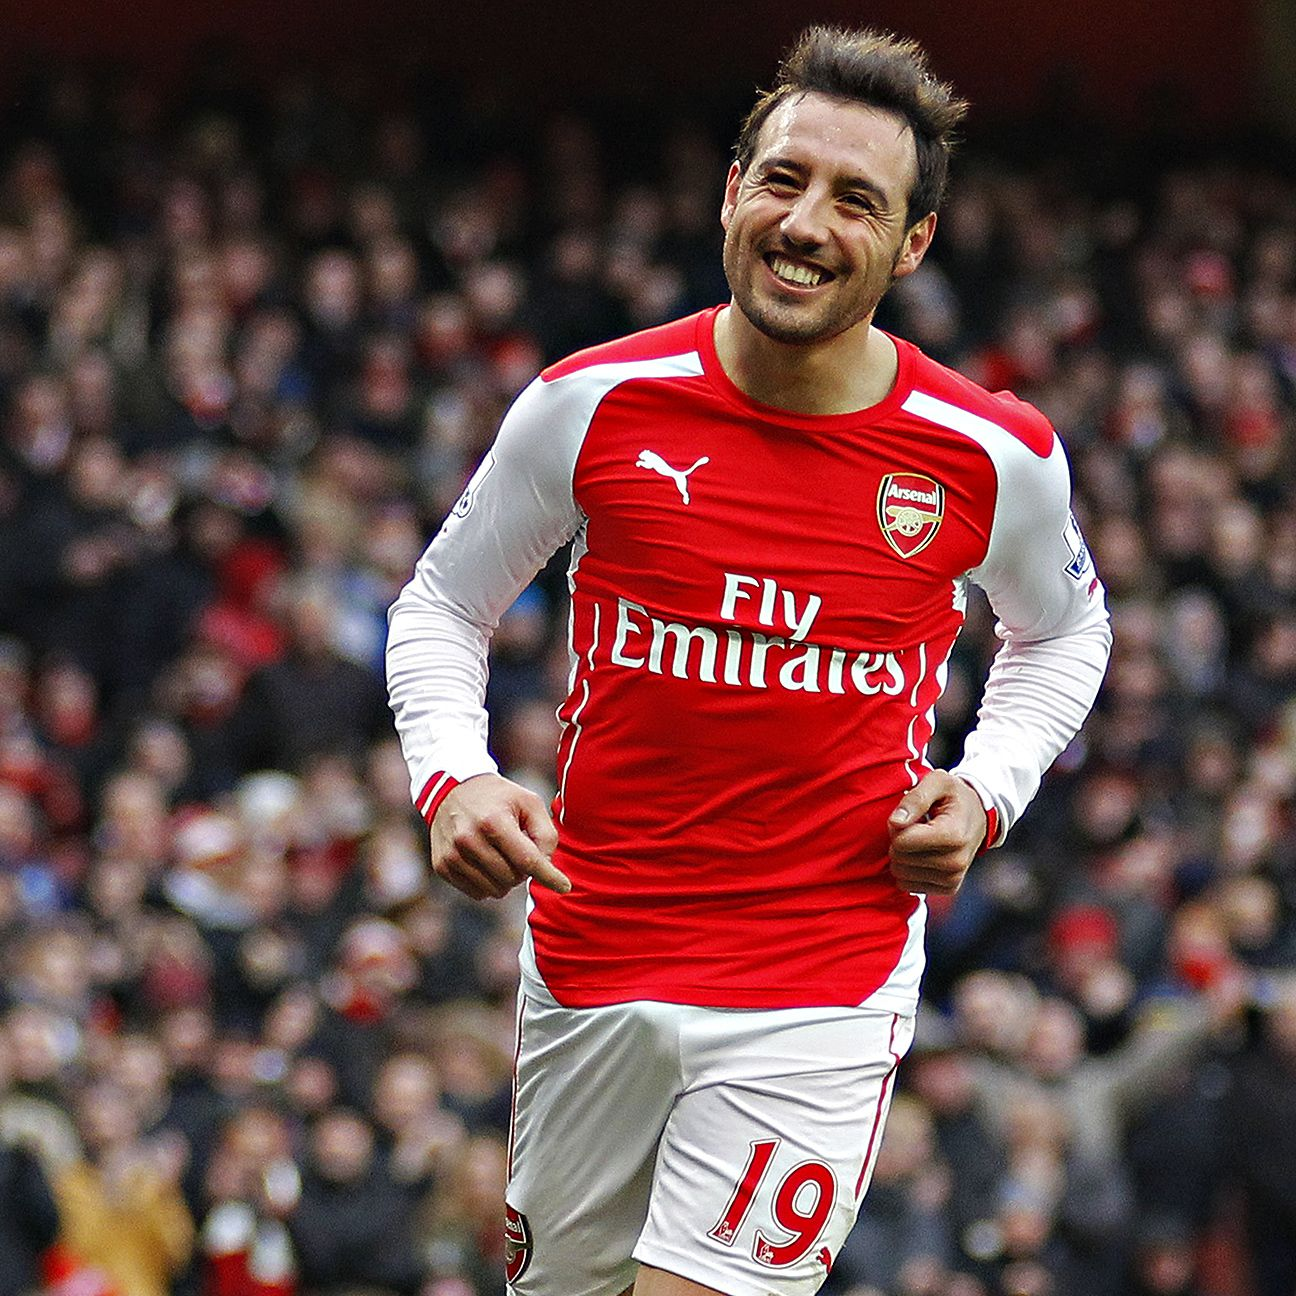 When he was healthy, Santi Cazorla left every Arsenal supporter smiling along with him.